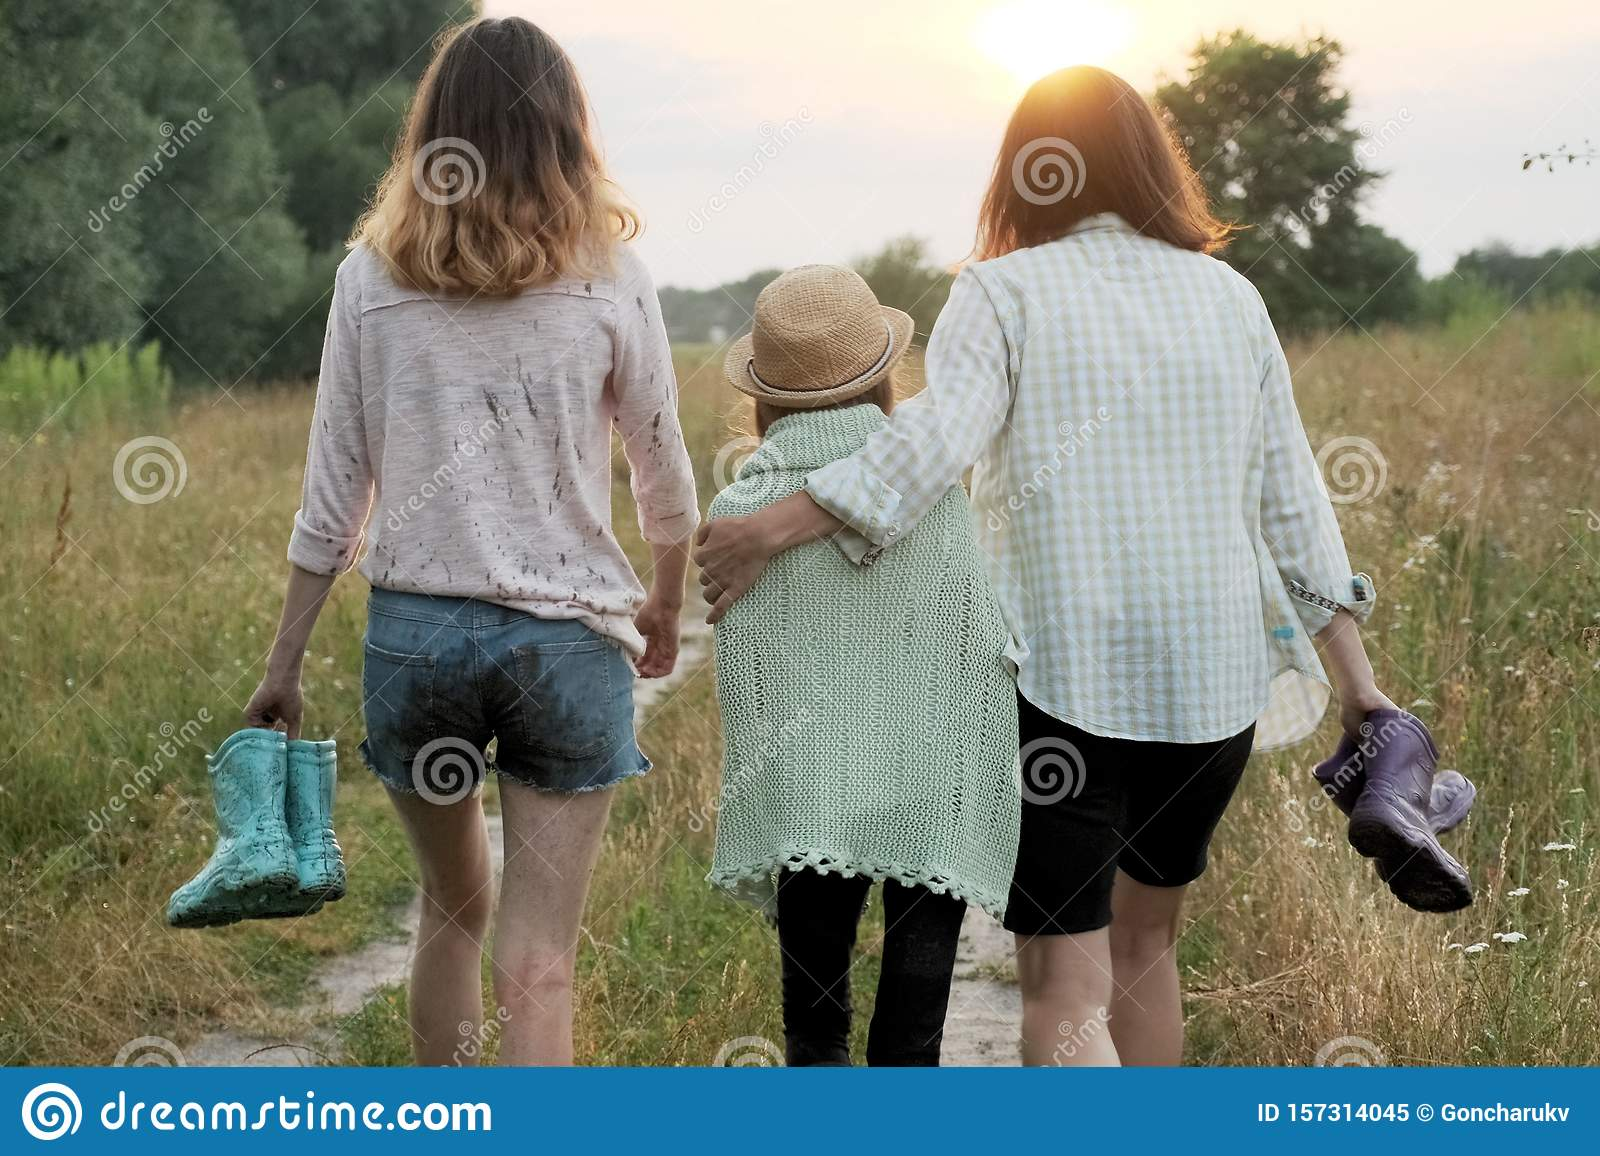 Mother and two daughters walking together along country road